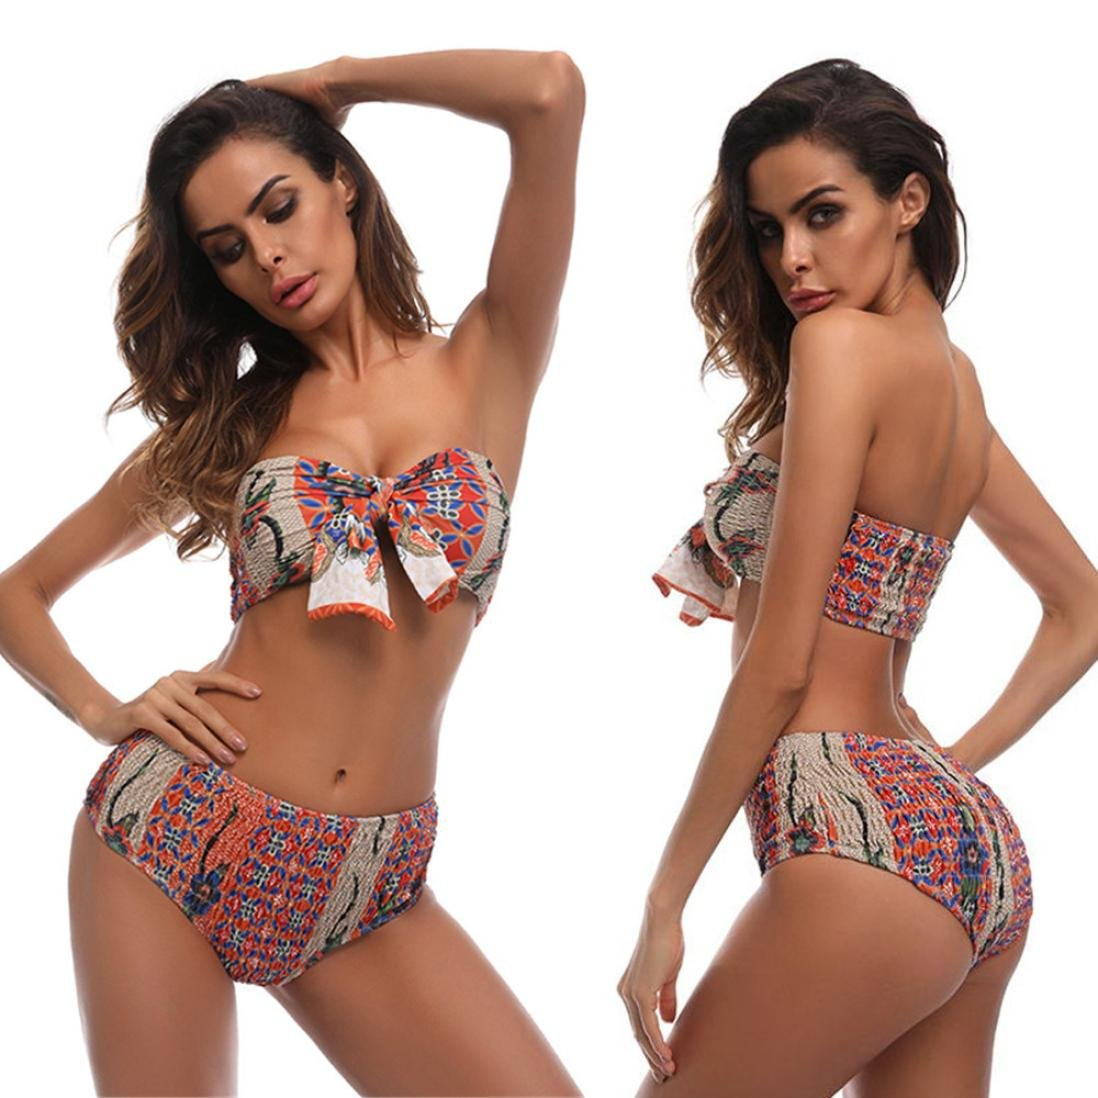 Fheaven Women Off Shoulder Swimwear Bikini Set Bohemia Print Bow Swimsuit Bathing (M, Multicolor) by Fheaven